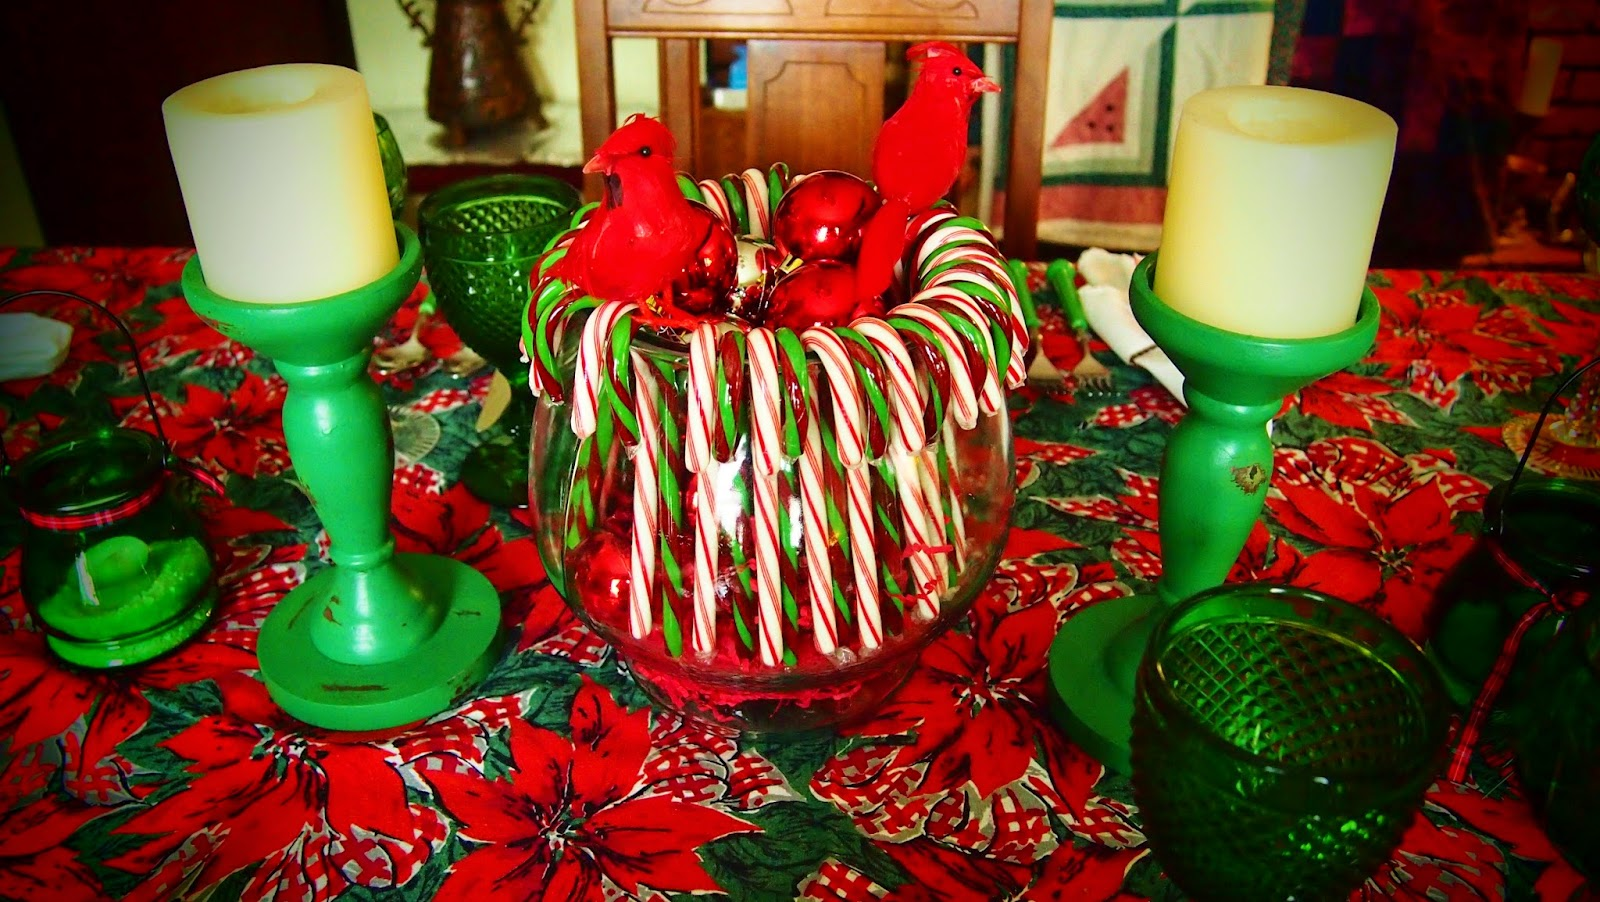 In the middle of nowhere christmas table 6 for Candy cane holder candle centerpiece